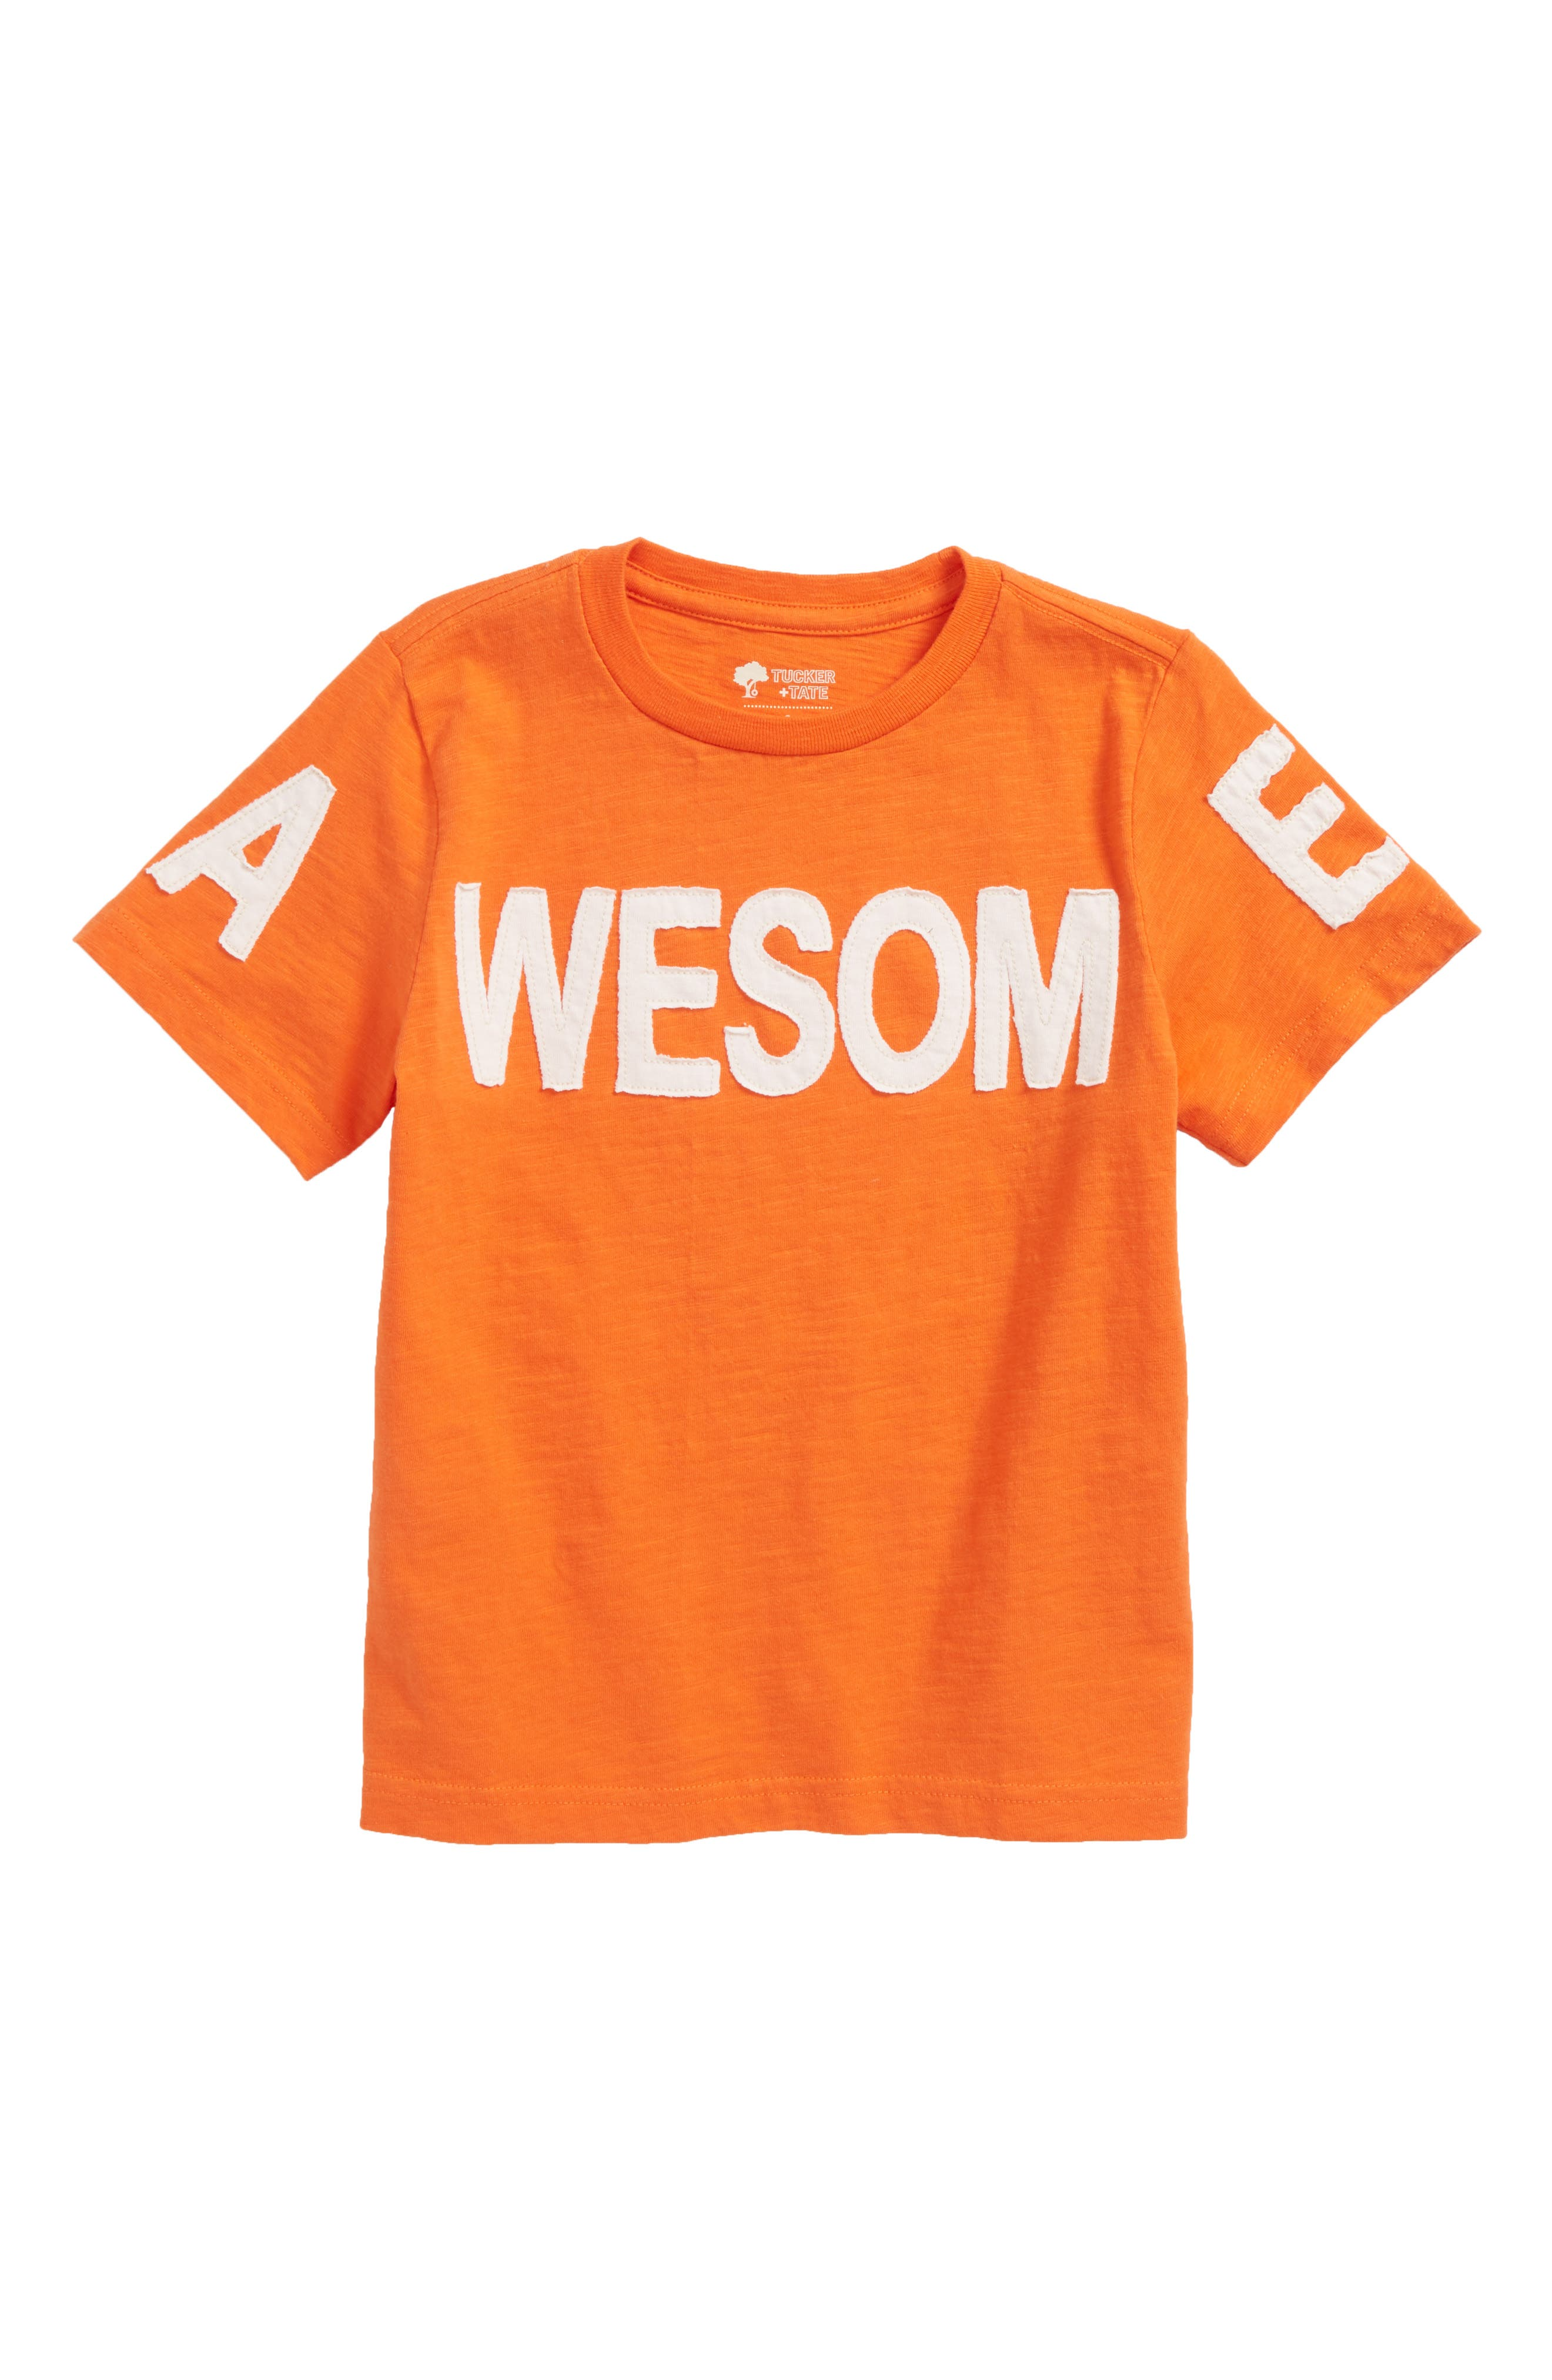 Awesome Appliqué T-Shirt,                         Main,                         color, Orange Lily Awesome